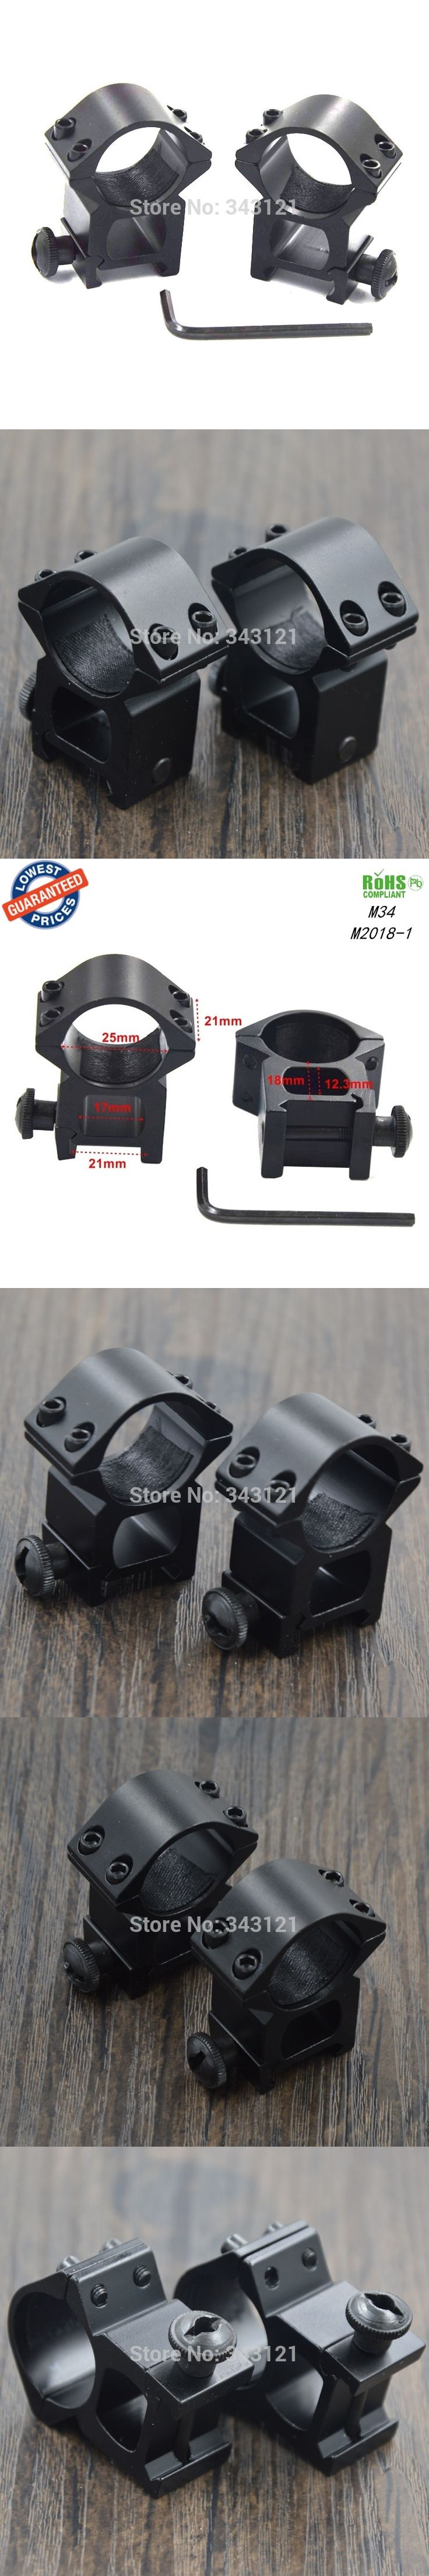 1Pair M34 25mm scope ring hunting mounts Picatinny Rail with 21mm scope mounts accessories